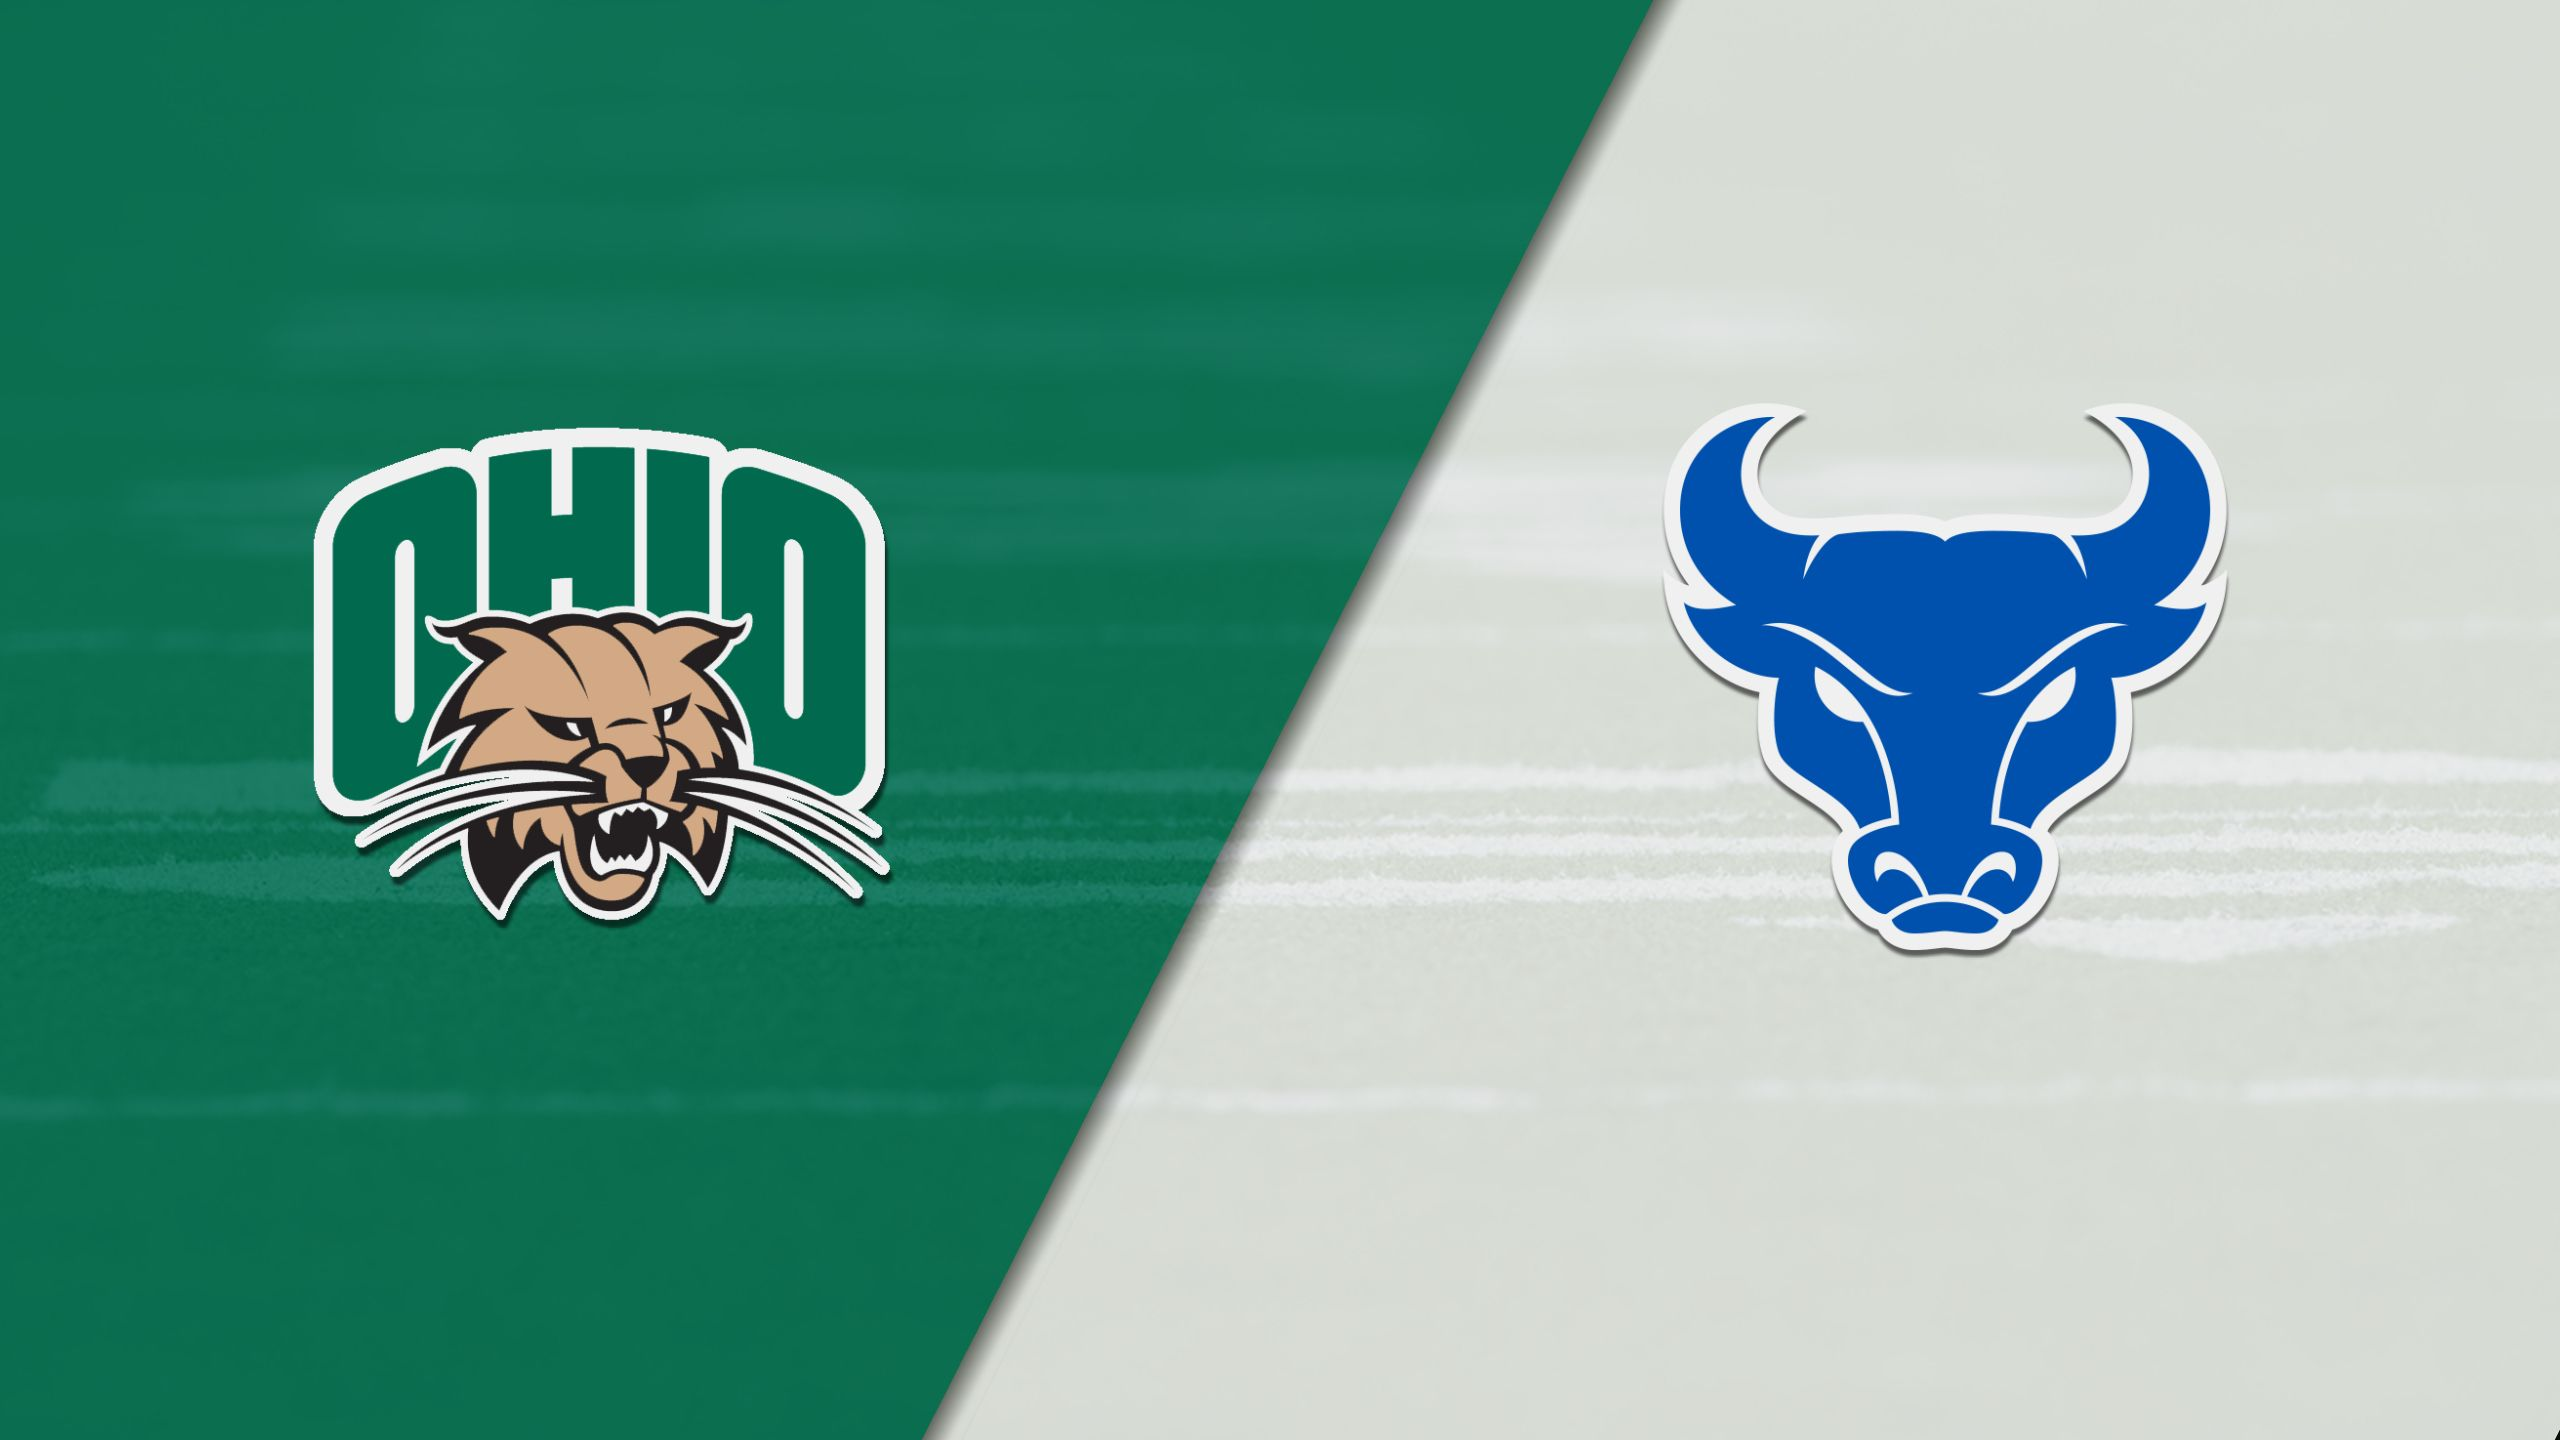 Ohio vs. Buffalo (Football)